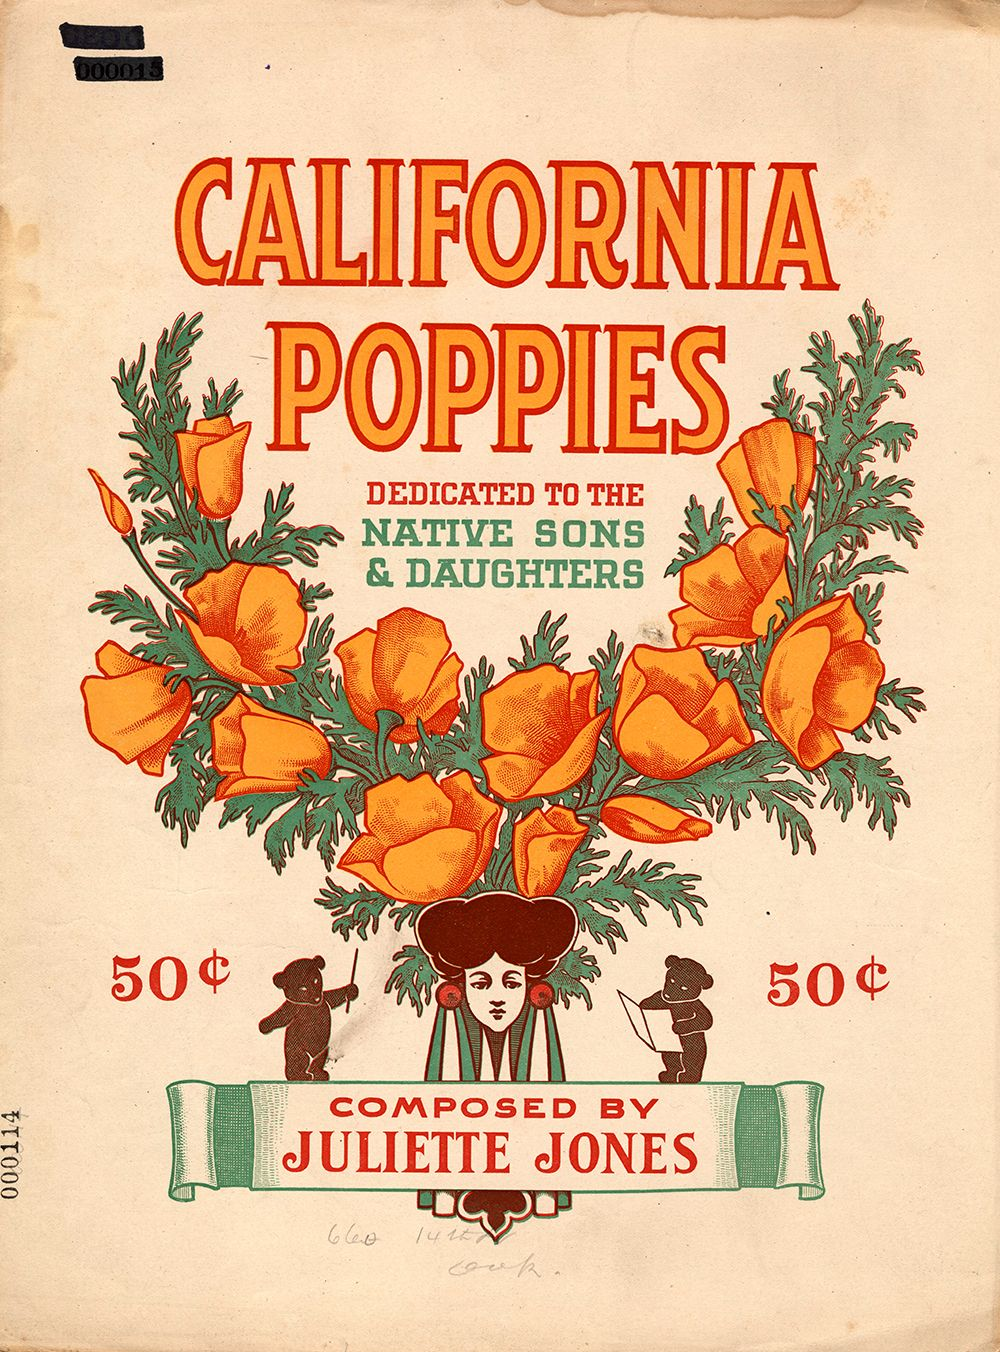 """California Poppies: Dedicated to the Native Sons and Daughters"" composed by Juliette Jones, 1910."